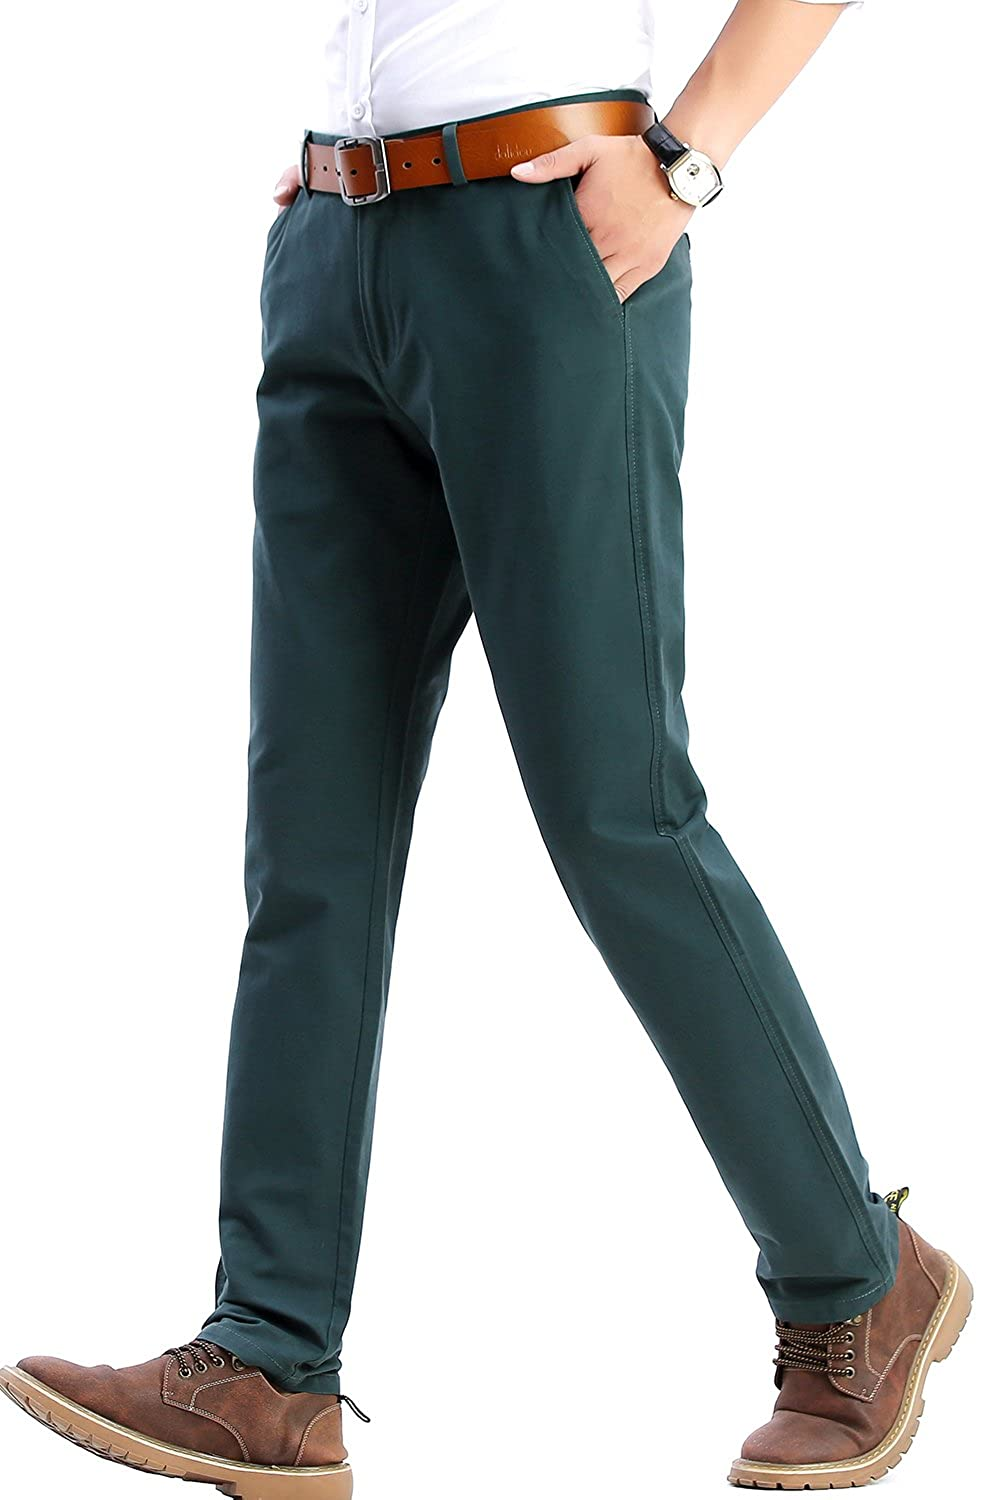 779efc425a INFLATION Men's 100% Cotton Slightly Stretchy Slim Fit Casual Pants, Flat  Front Trousers Dress Pants for Men